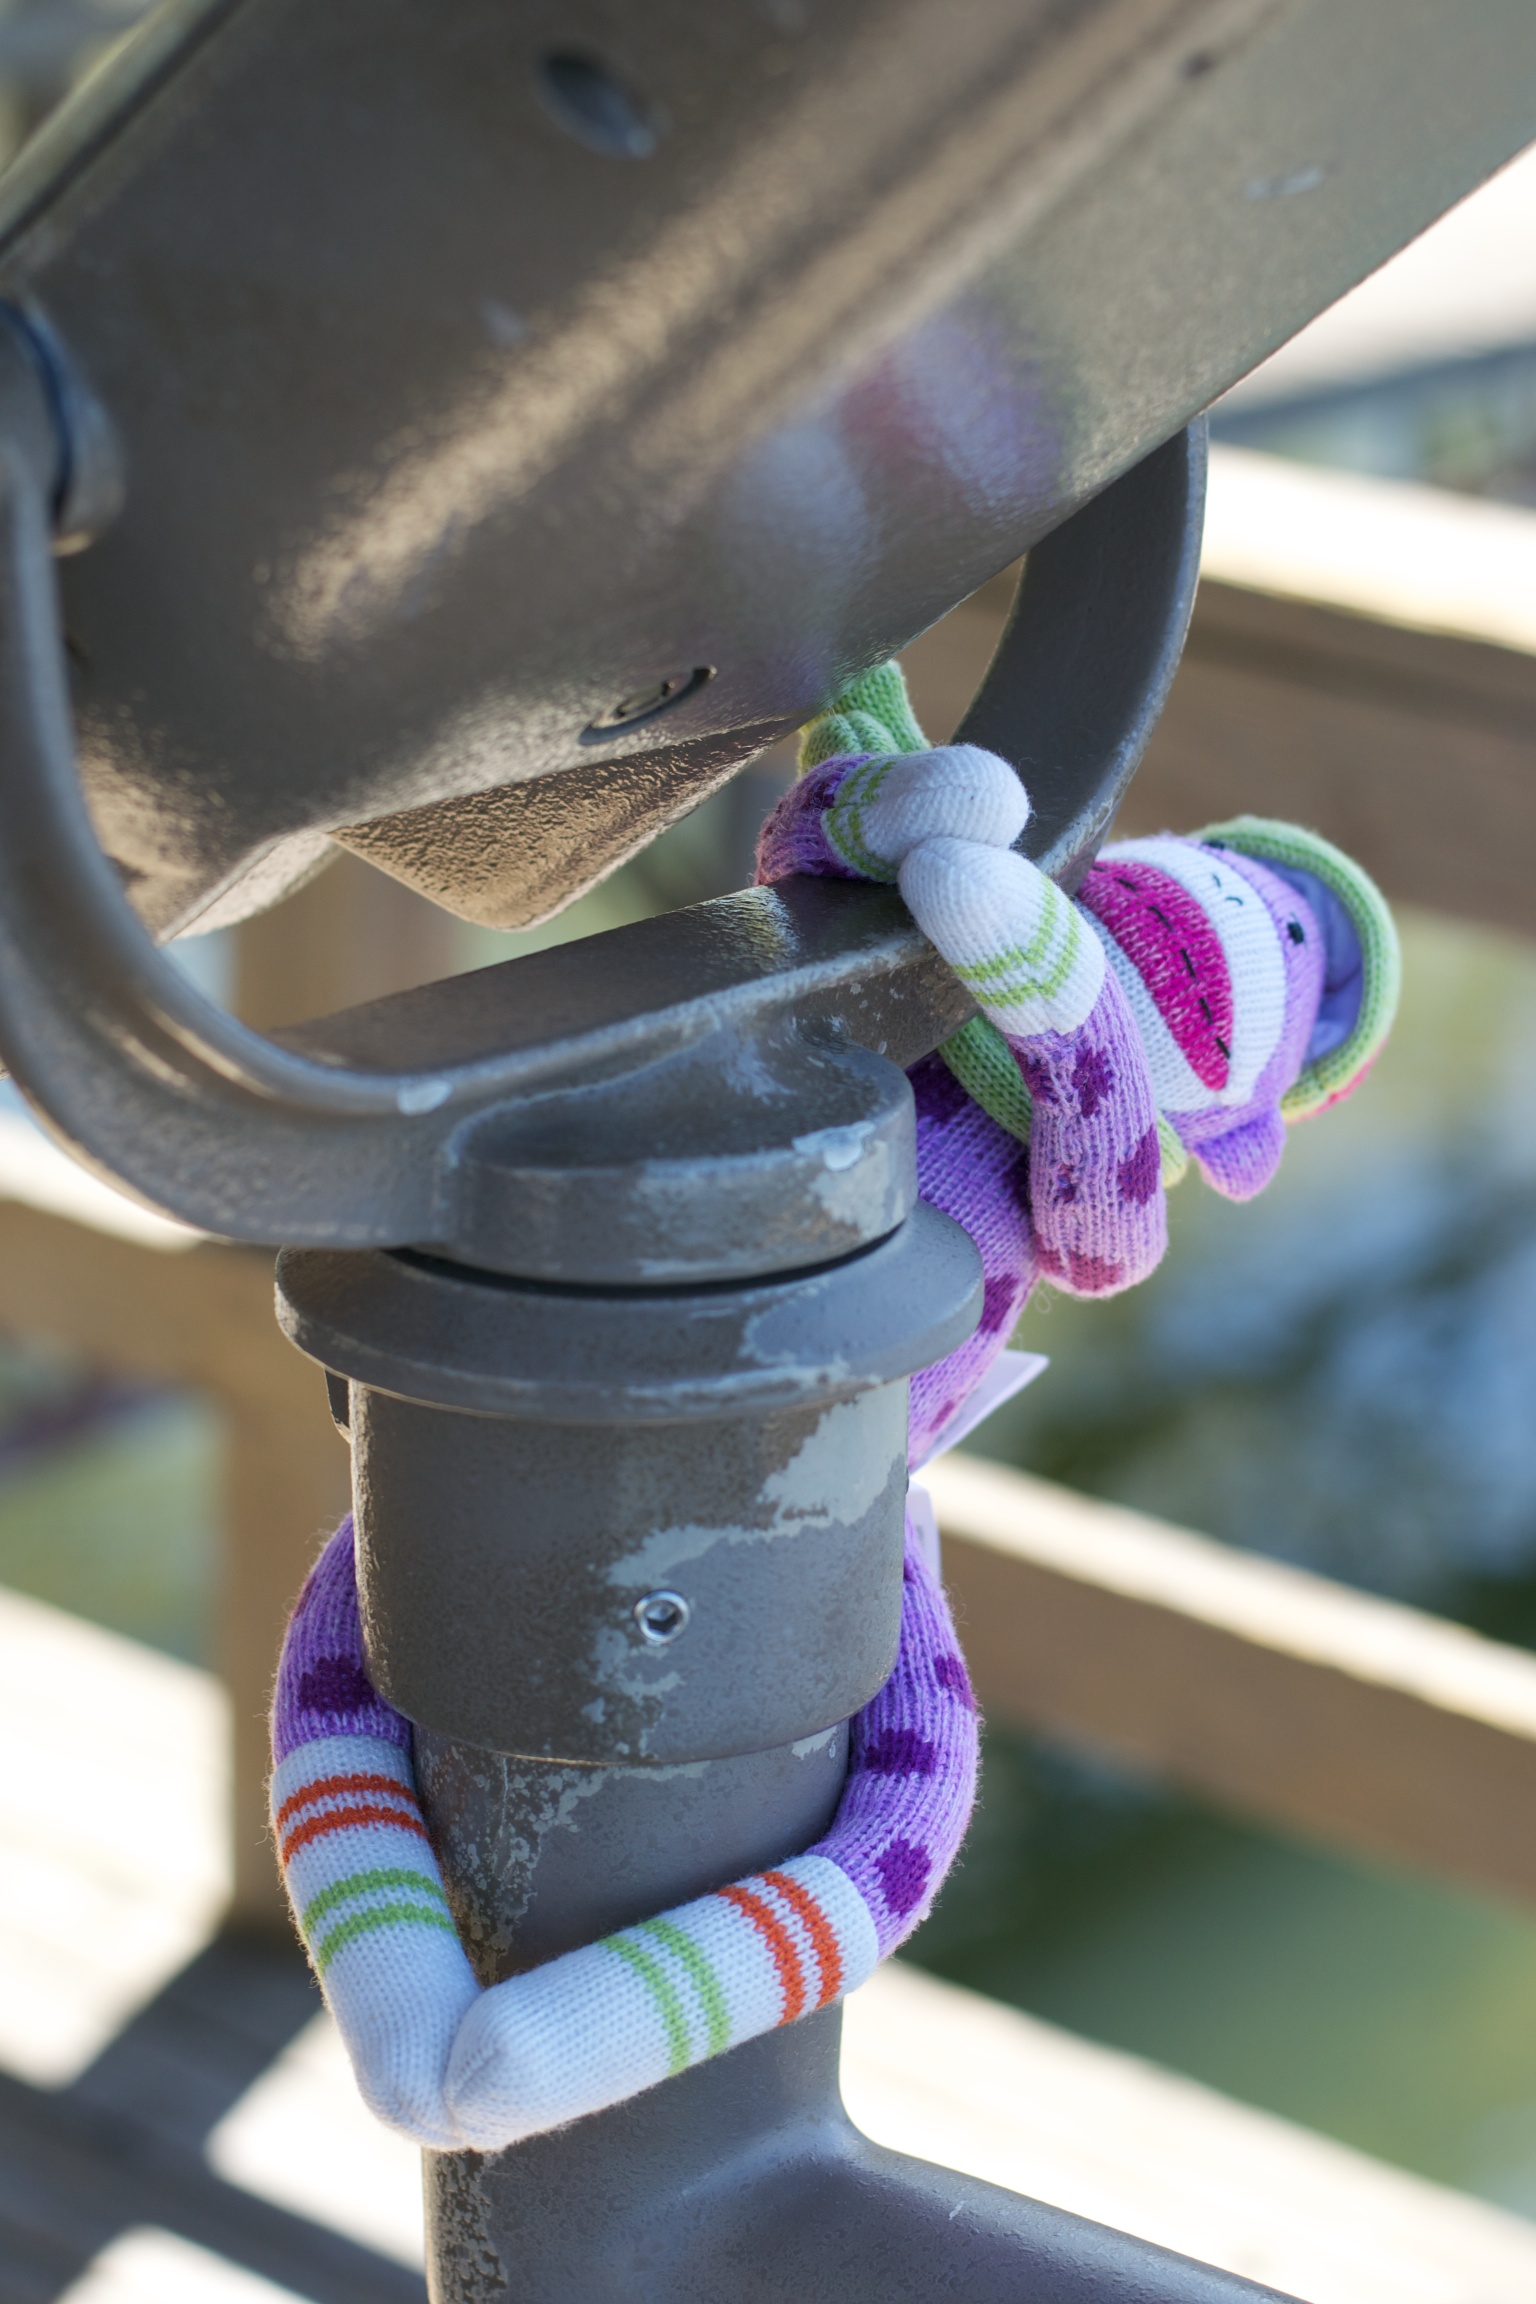 The adventures of Dottie, the sock monkey: Barr Lake State Park